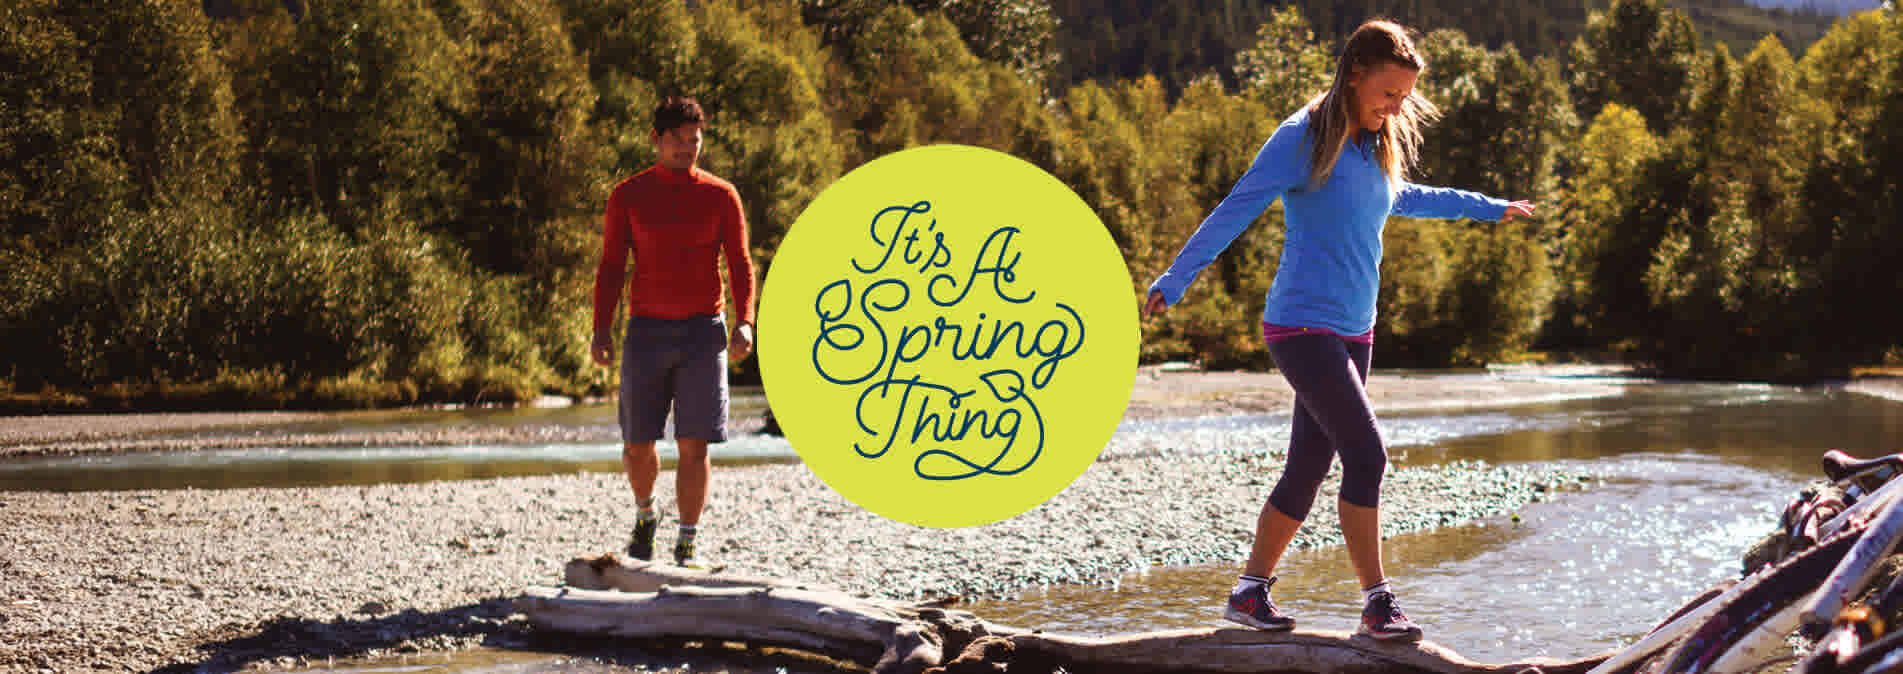 Whistler Family Spring Skiing Deals